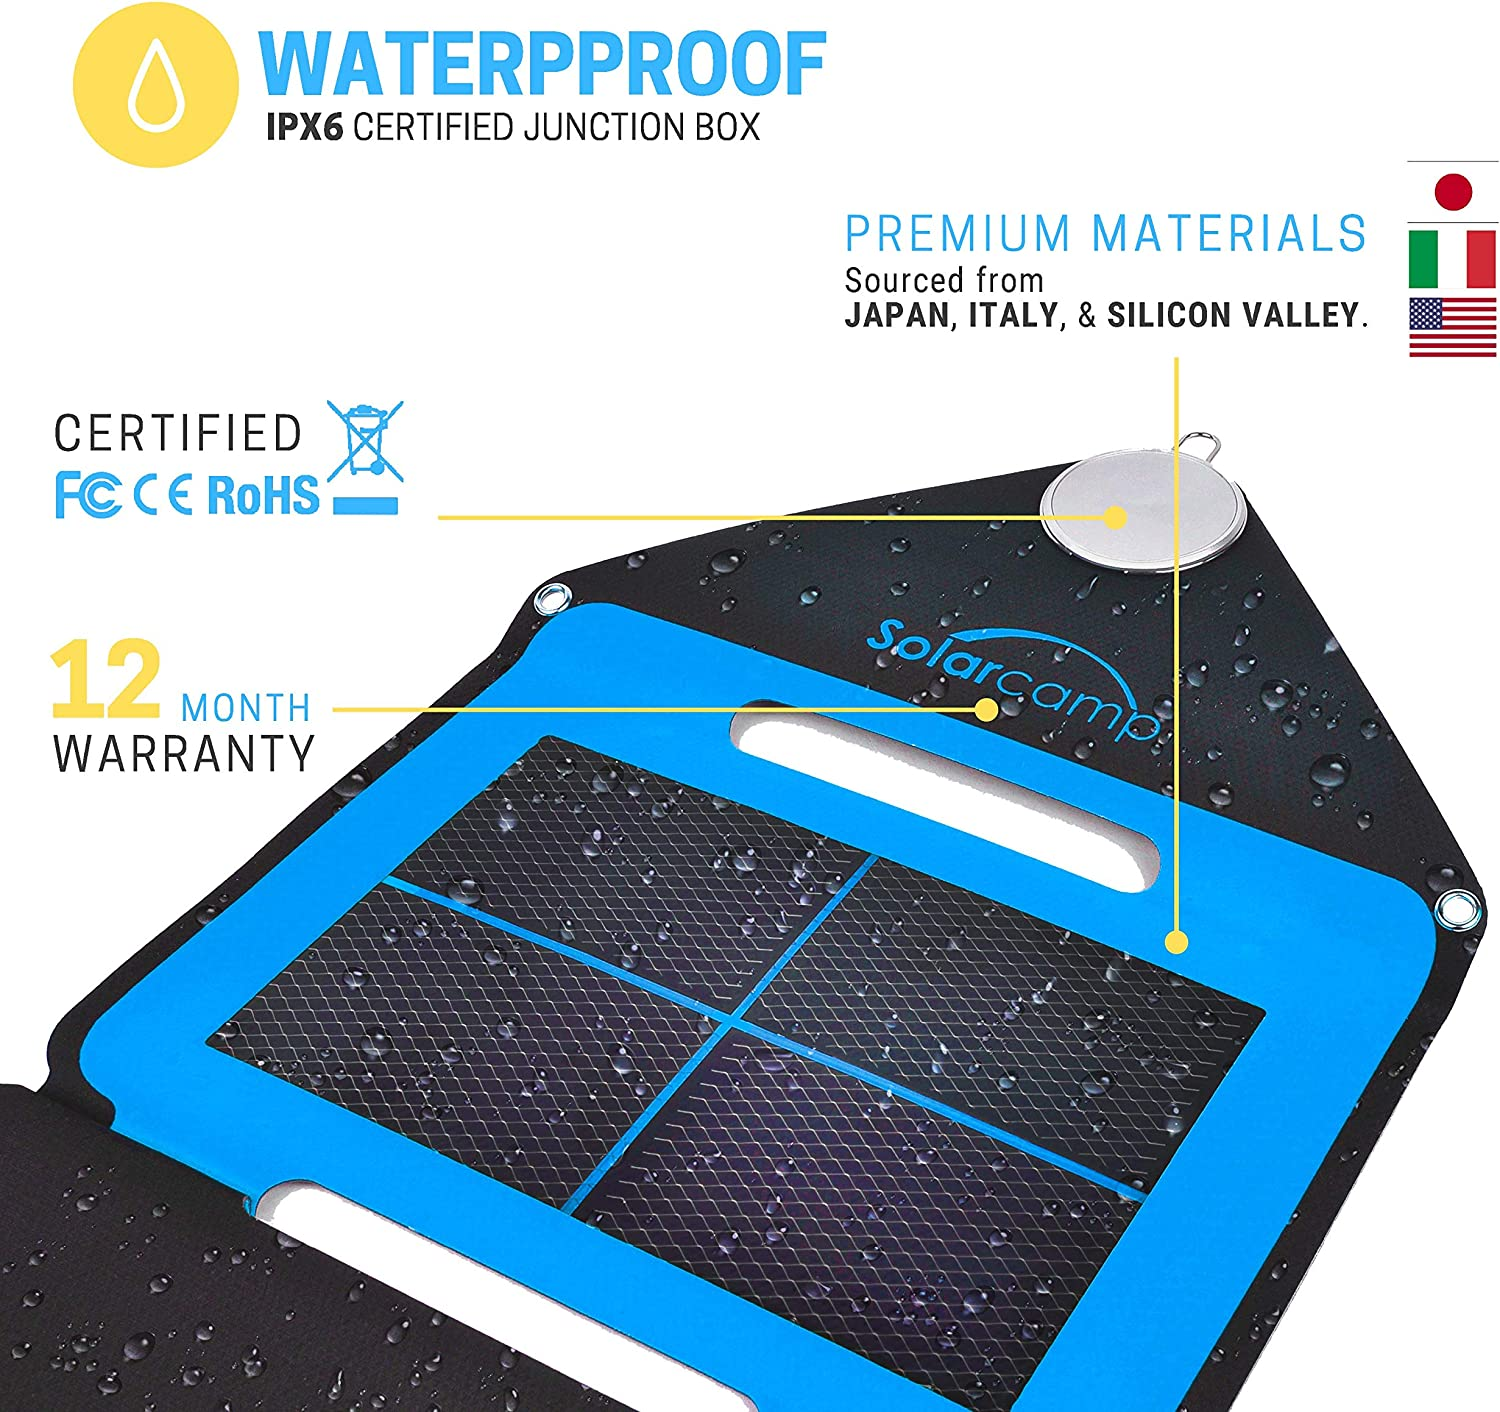 Solar Camp /Ð Solympic Hue /Ð Portable Waterproof Flexible Folding Solar Charger with CIGS Solar Panels /Ð 7.6W Dual USB Charging Ports /Ð for Quickly Charging Electronic Devices Green